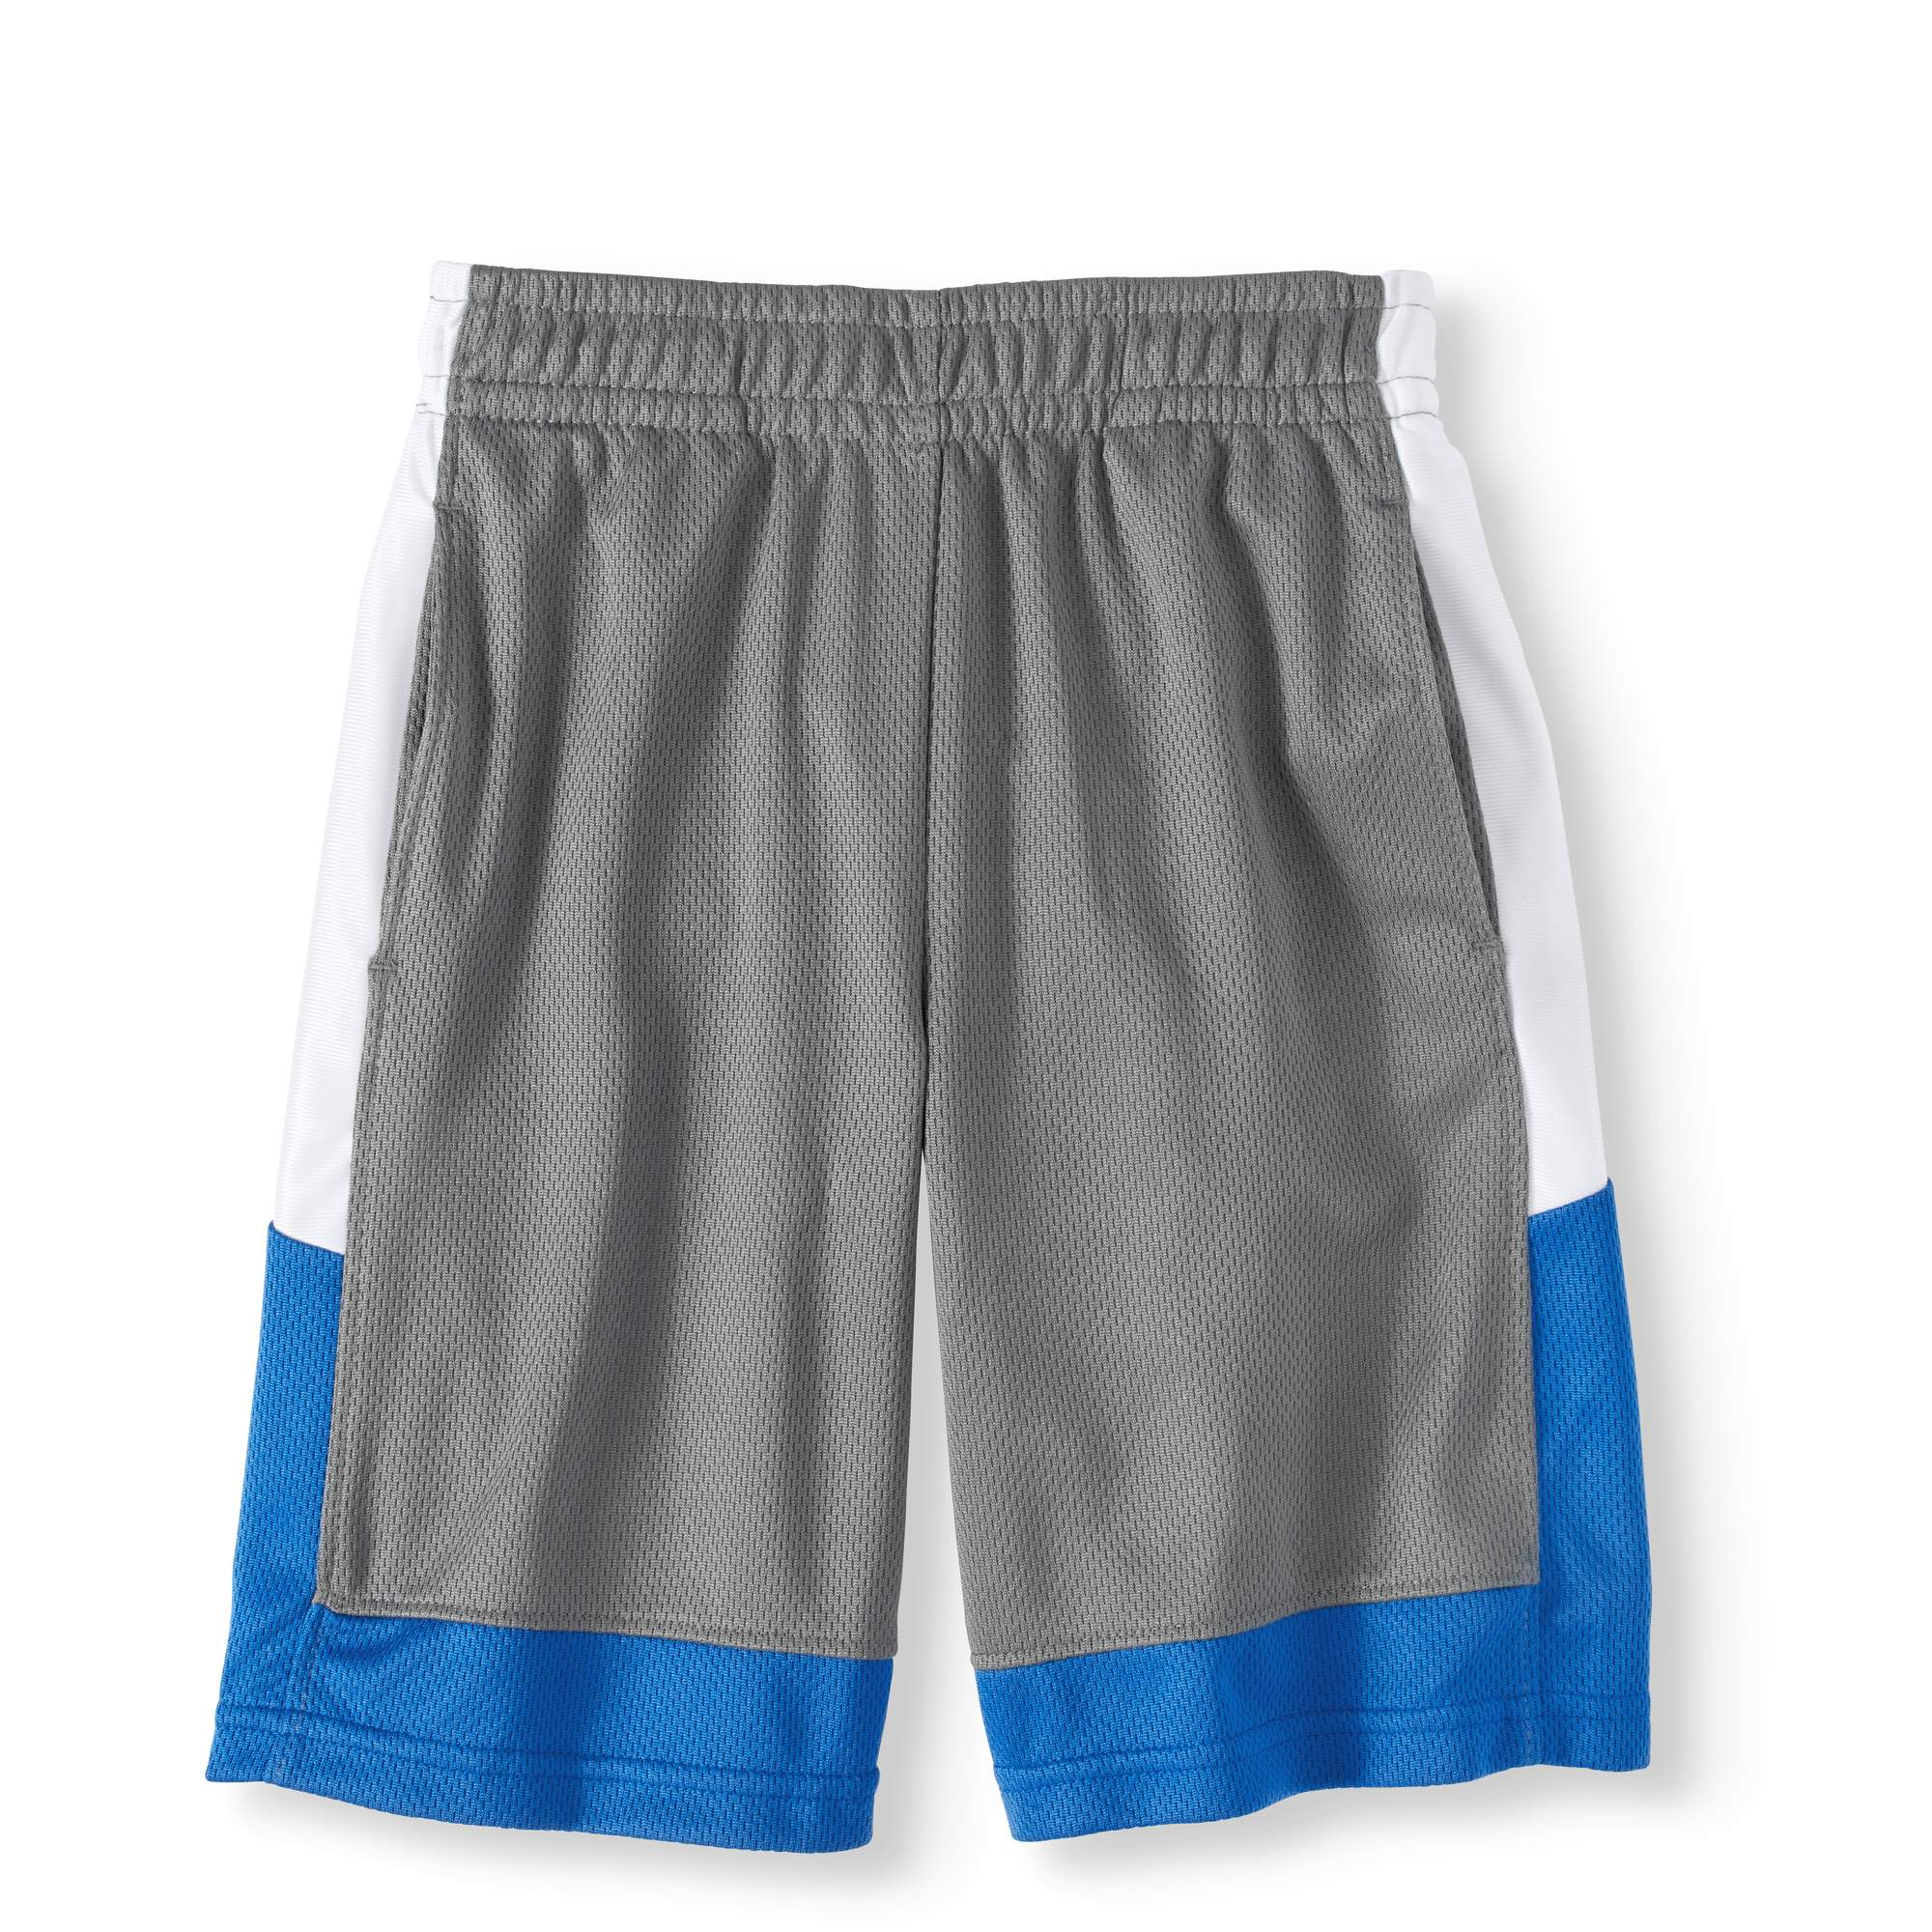 Boys' Mesh Shorts with Pockets